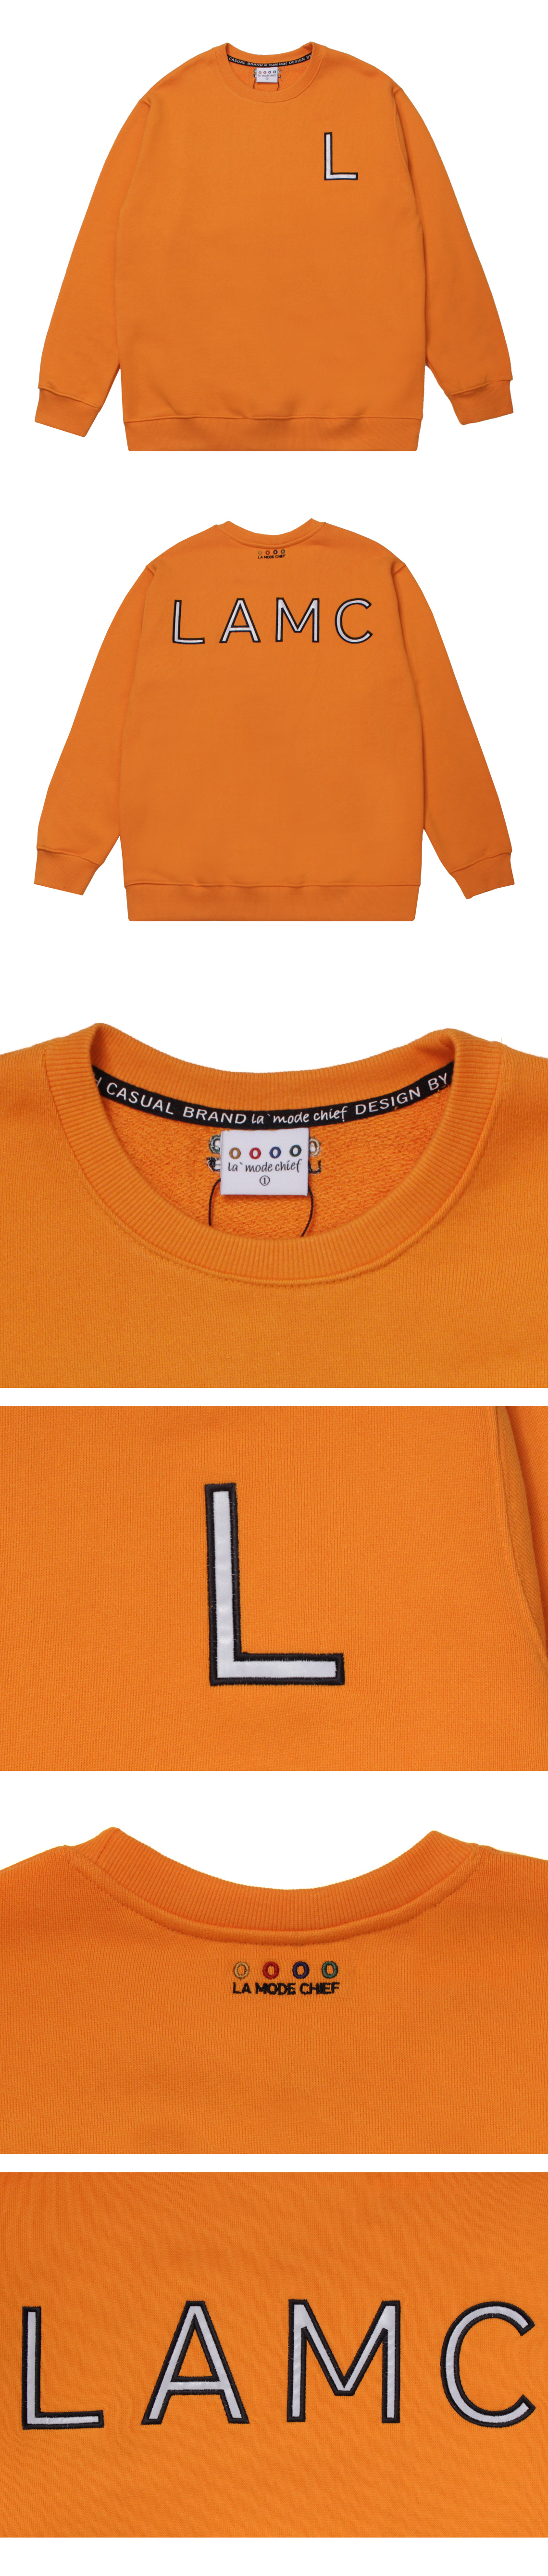 (단독가)라모드치프 LAM REFLECTIVE SHEET MTM (ORANGE)